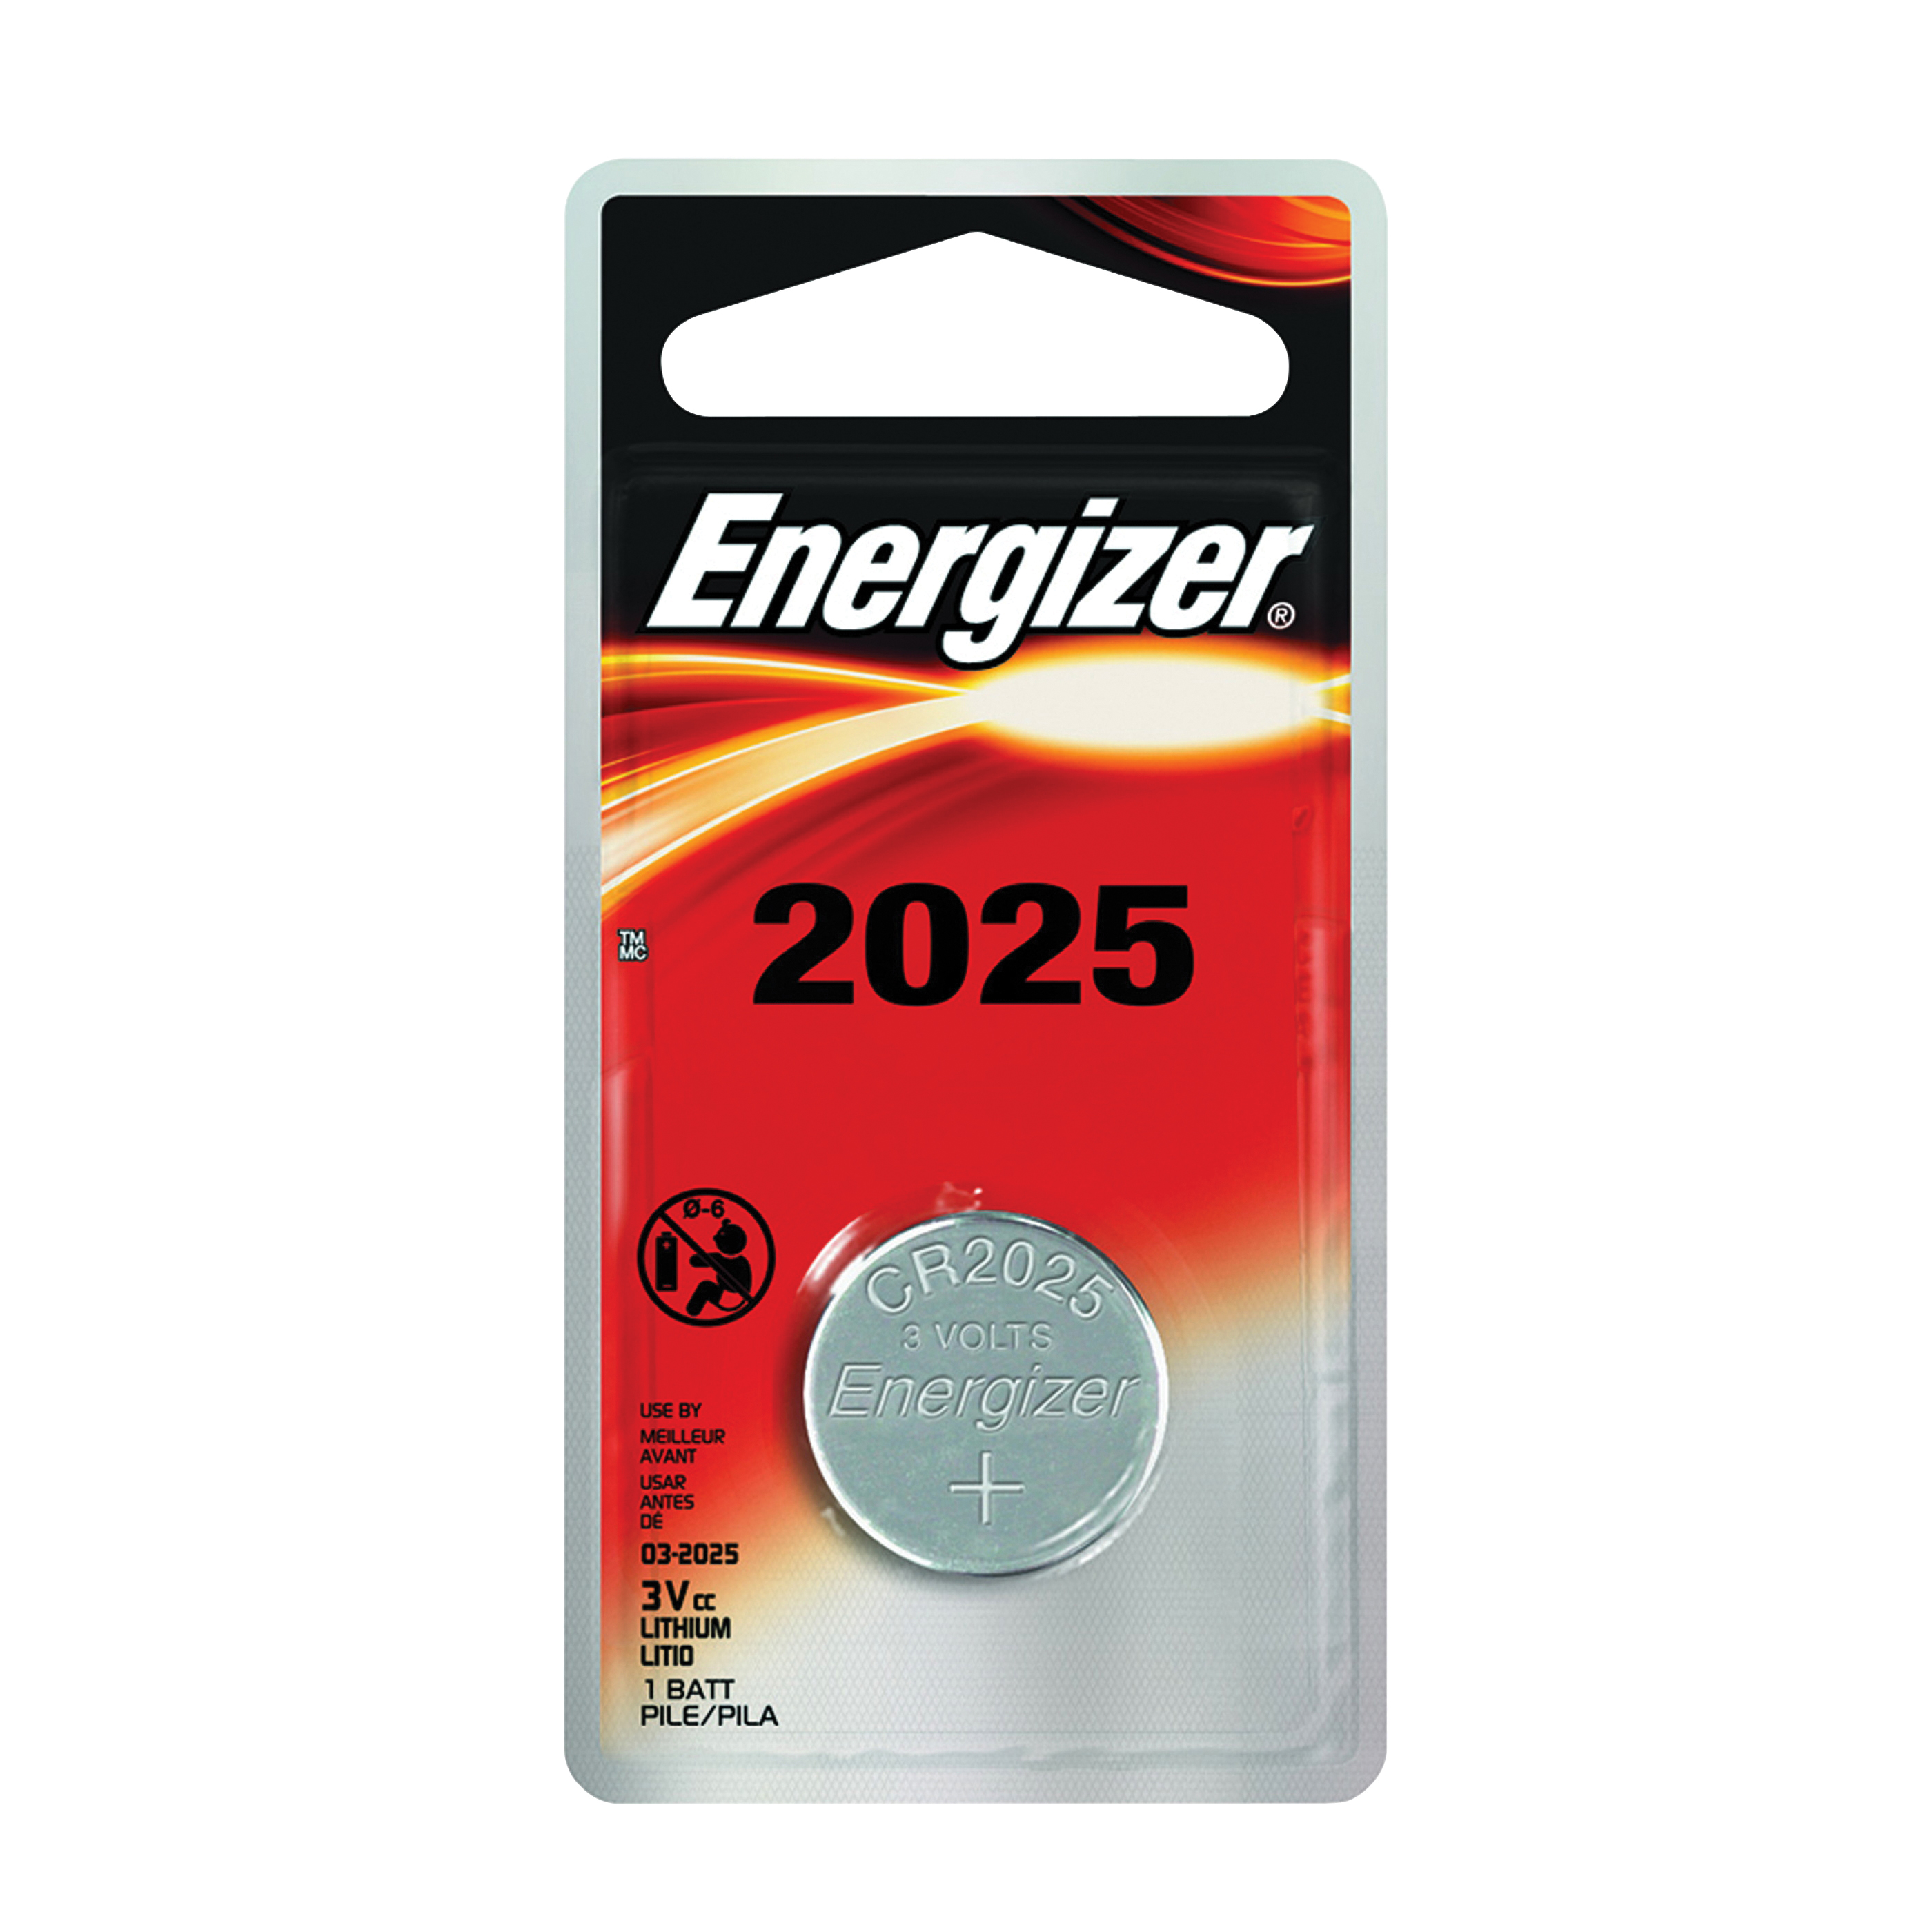 Picture of Energizer ECR2025BP Coin Cell Battery, 3 V Battery, 170 mAh, CR2025 Battery, Lithium, Manganese Dioxide